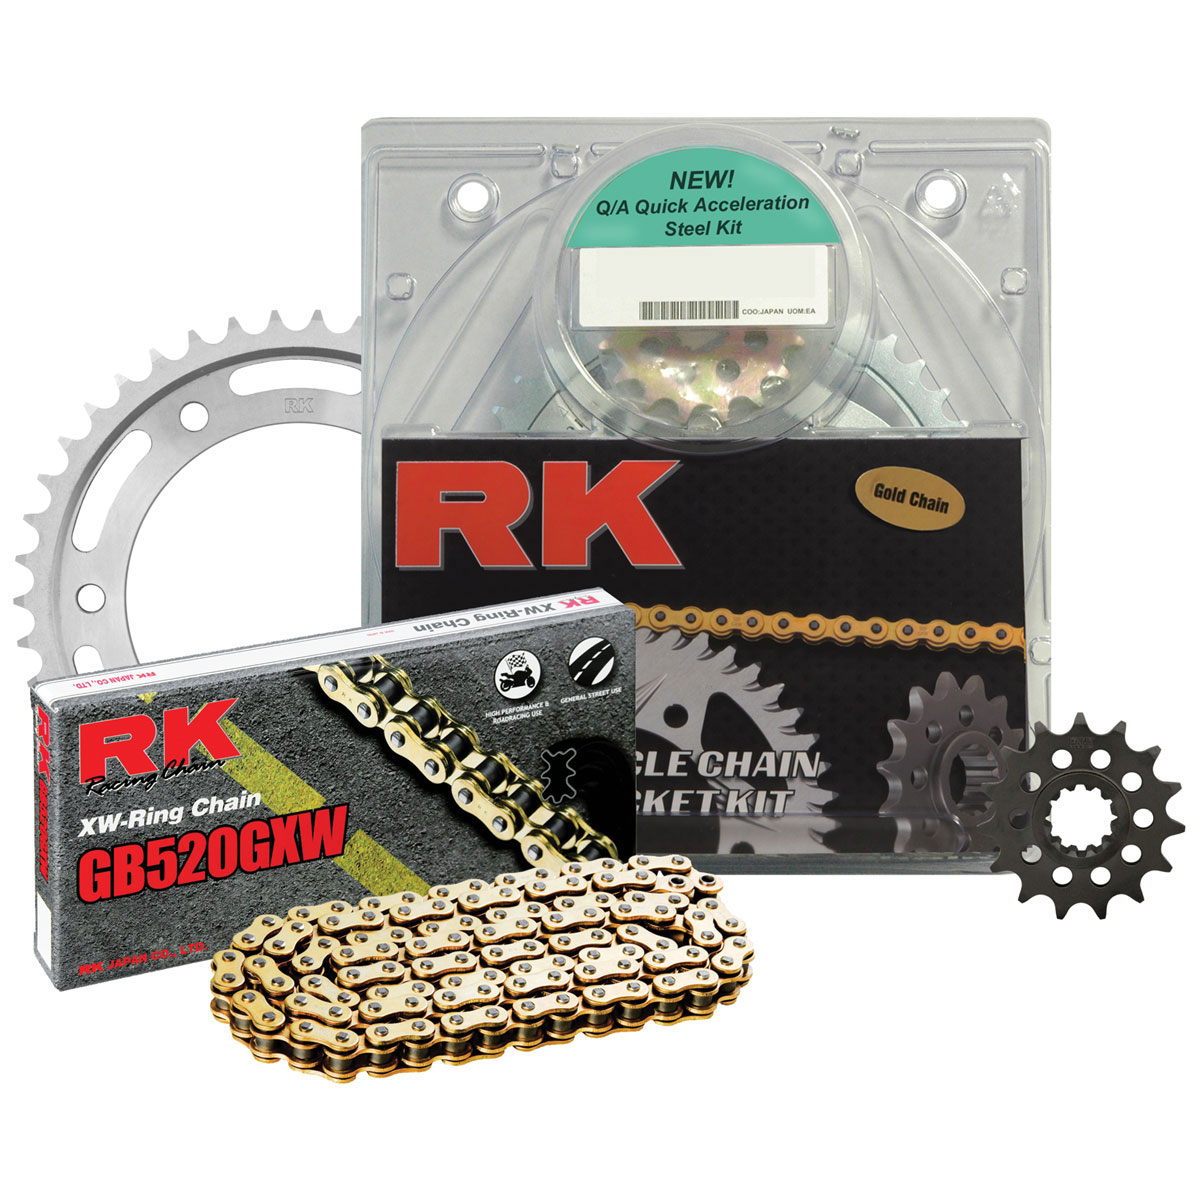 RK Chains 520 Steel Quick Acceleration Chain and Sprocket Kit